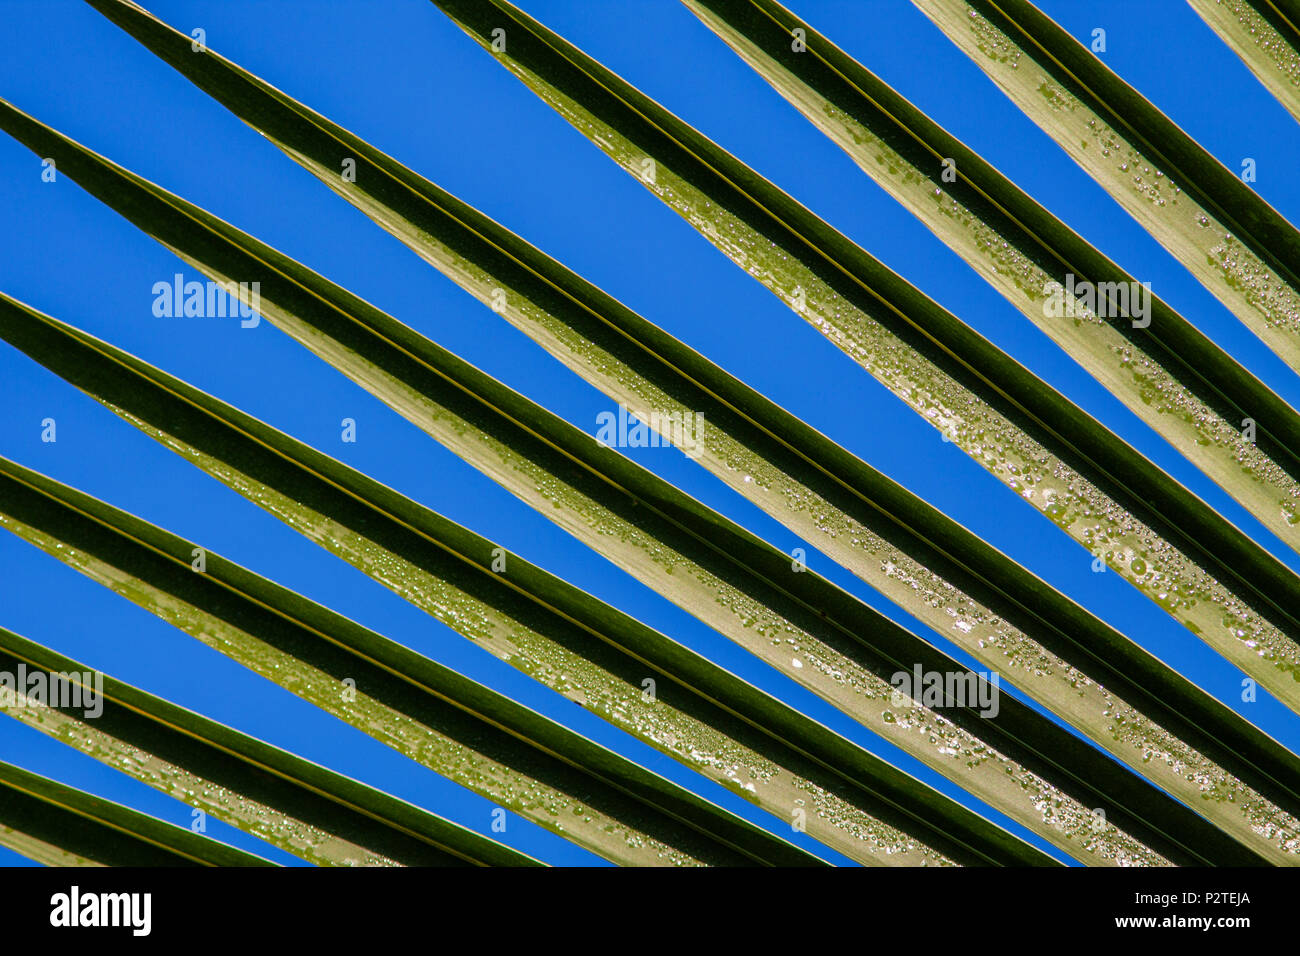 Patterns in Palm leaves of Coconut trees in tropical gardens at the Sarapiqui Neotropic center, northeastern Costa Rica. - Stock Image